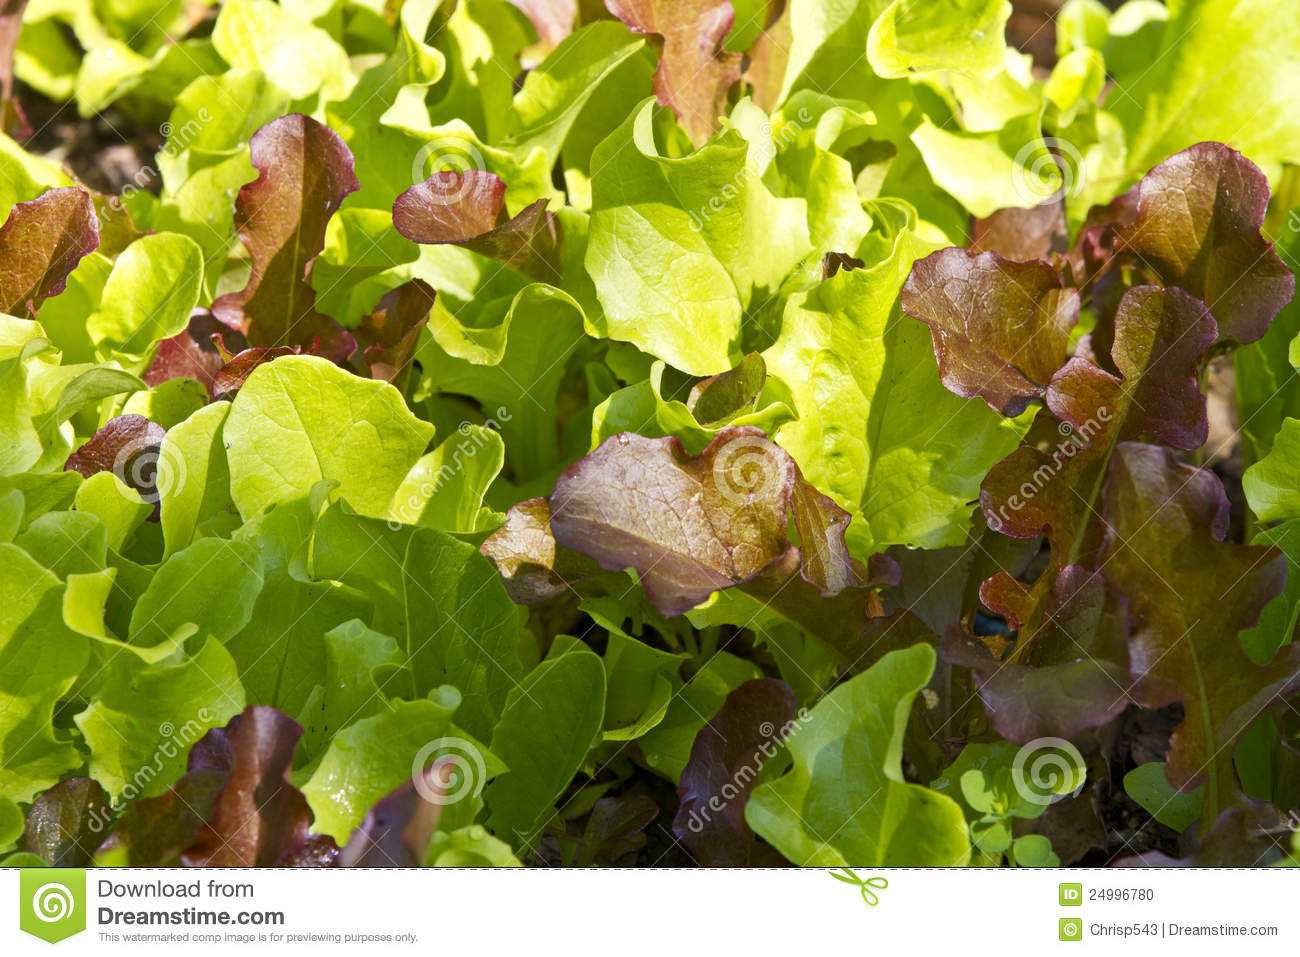 Download Close Up Of Growing Baby Salad Leaves Stock Photo - Image of close, details: 24996780